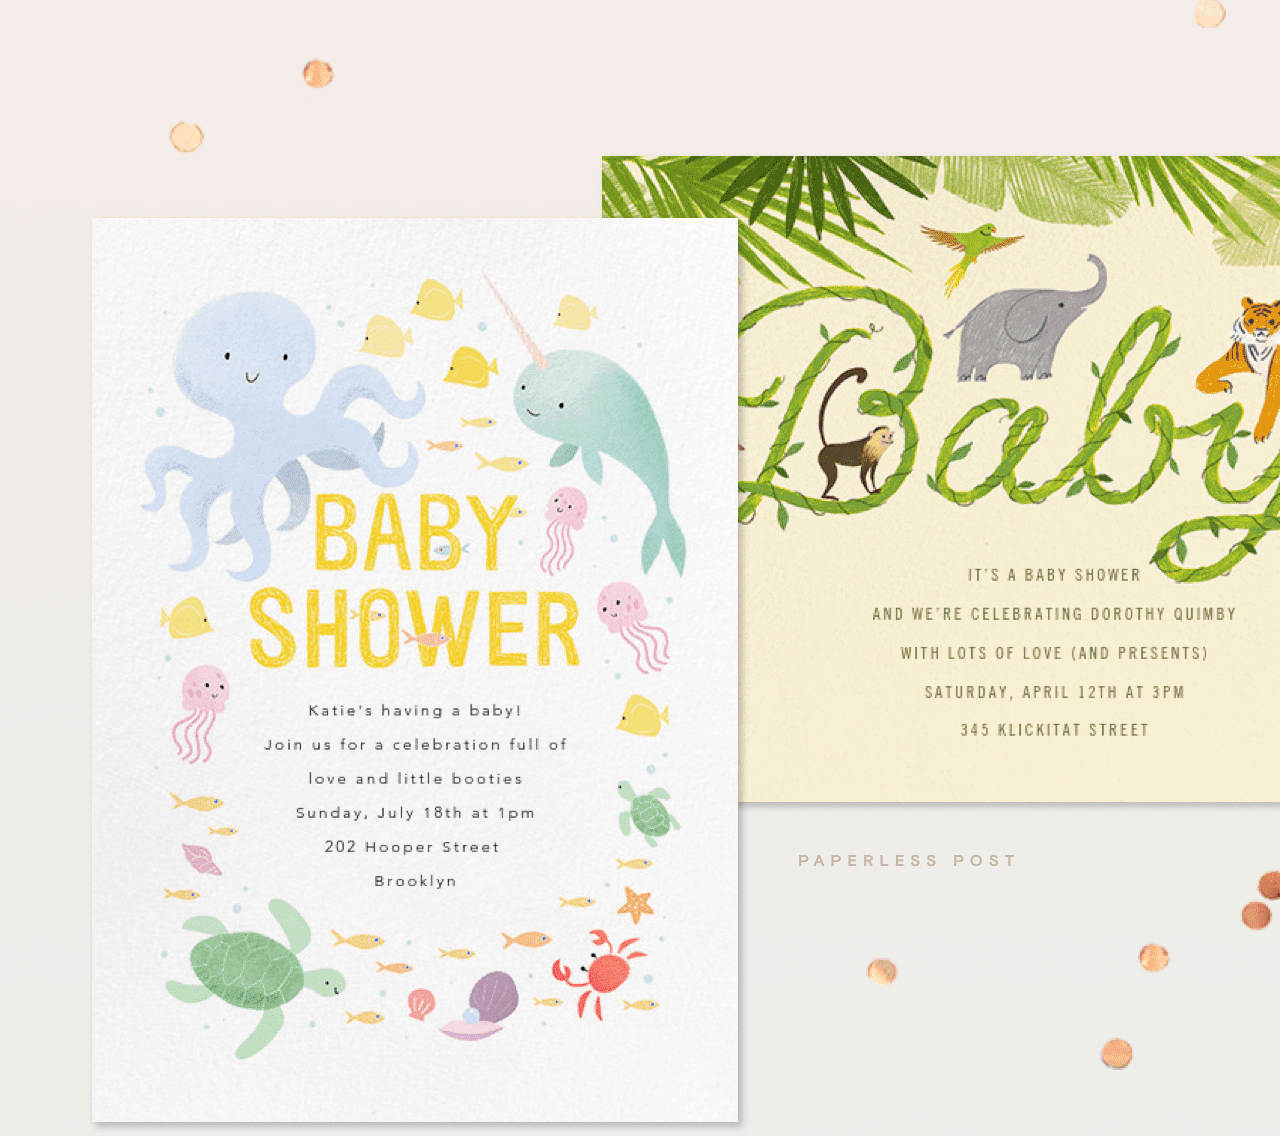 Paperless Post Here Comes Our Baby Shower Milled